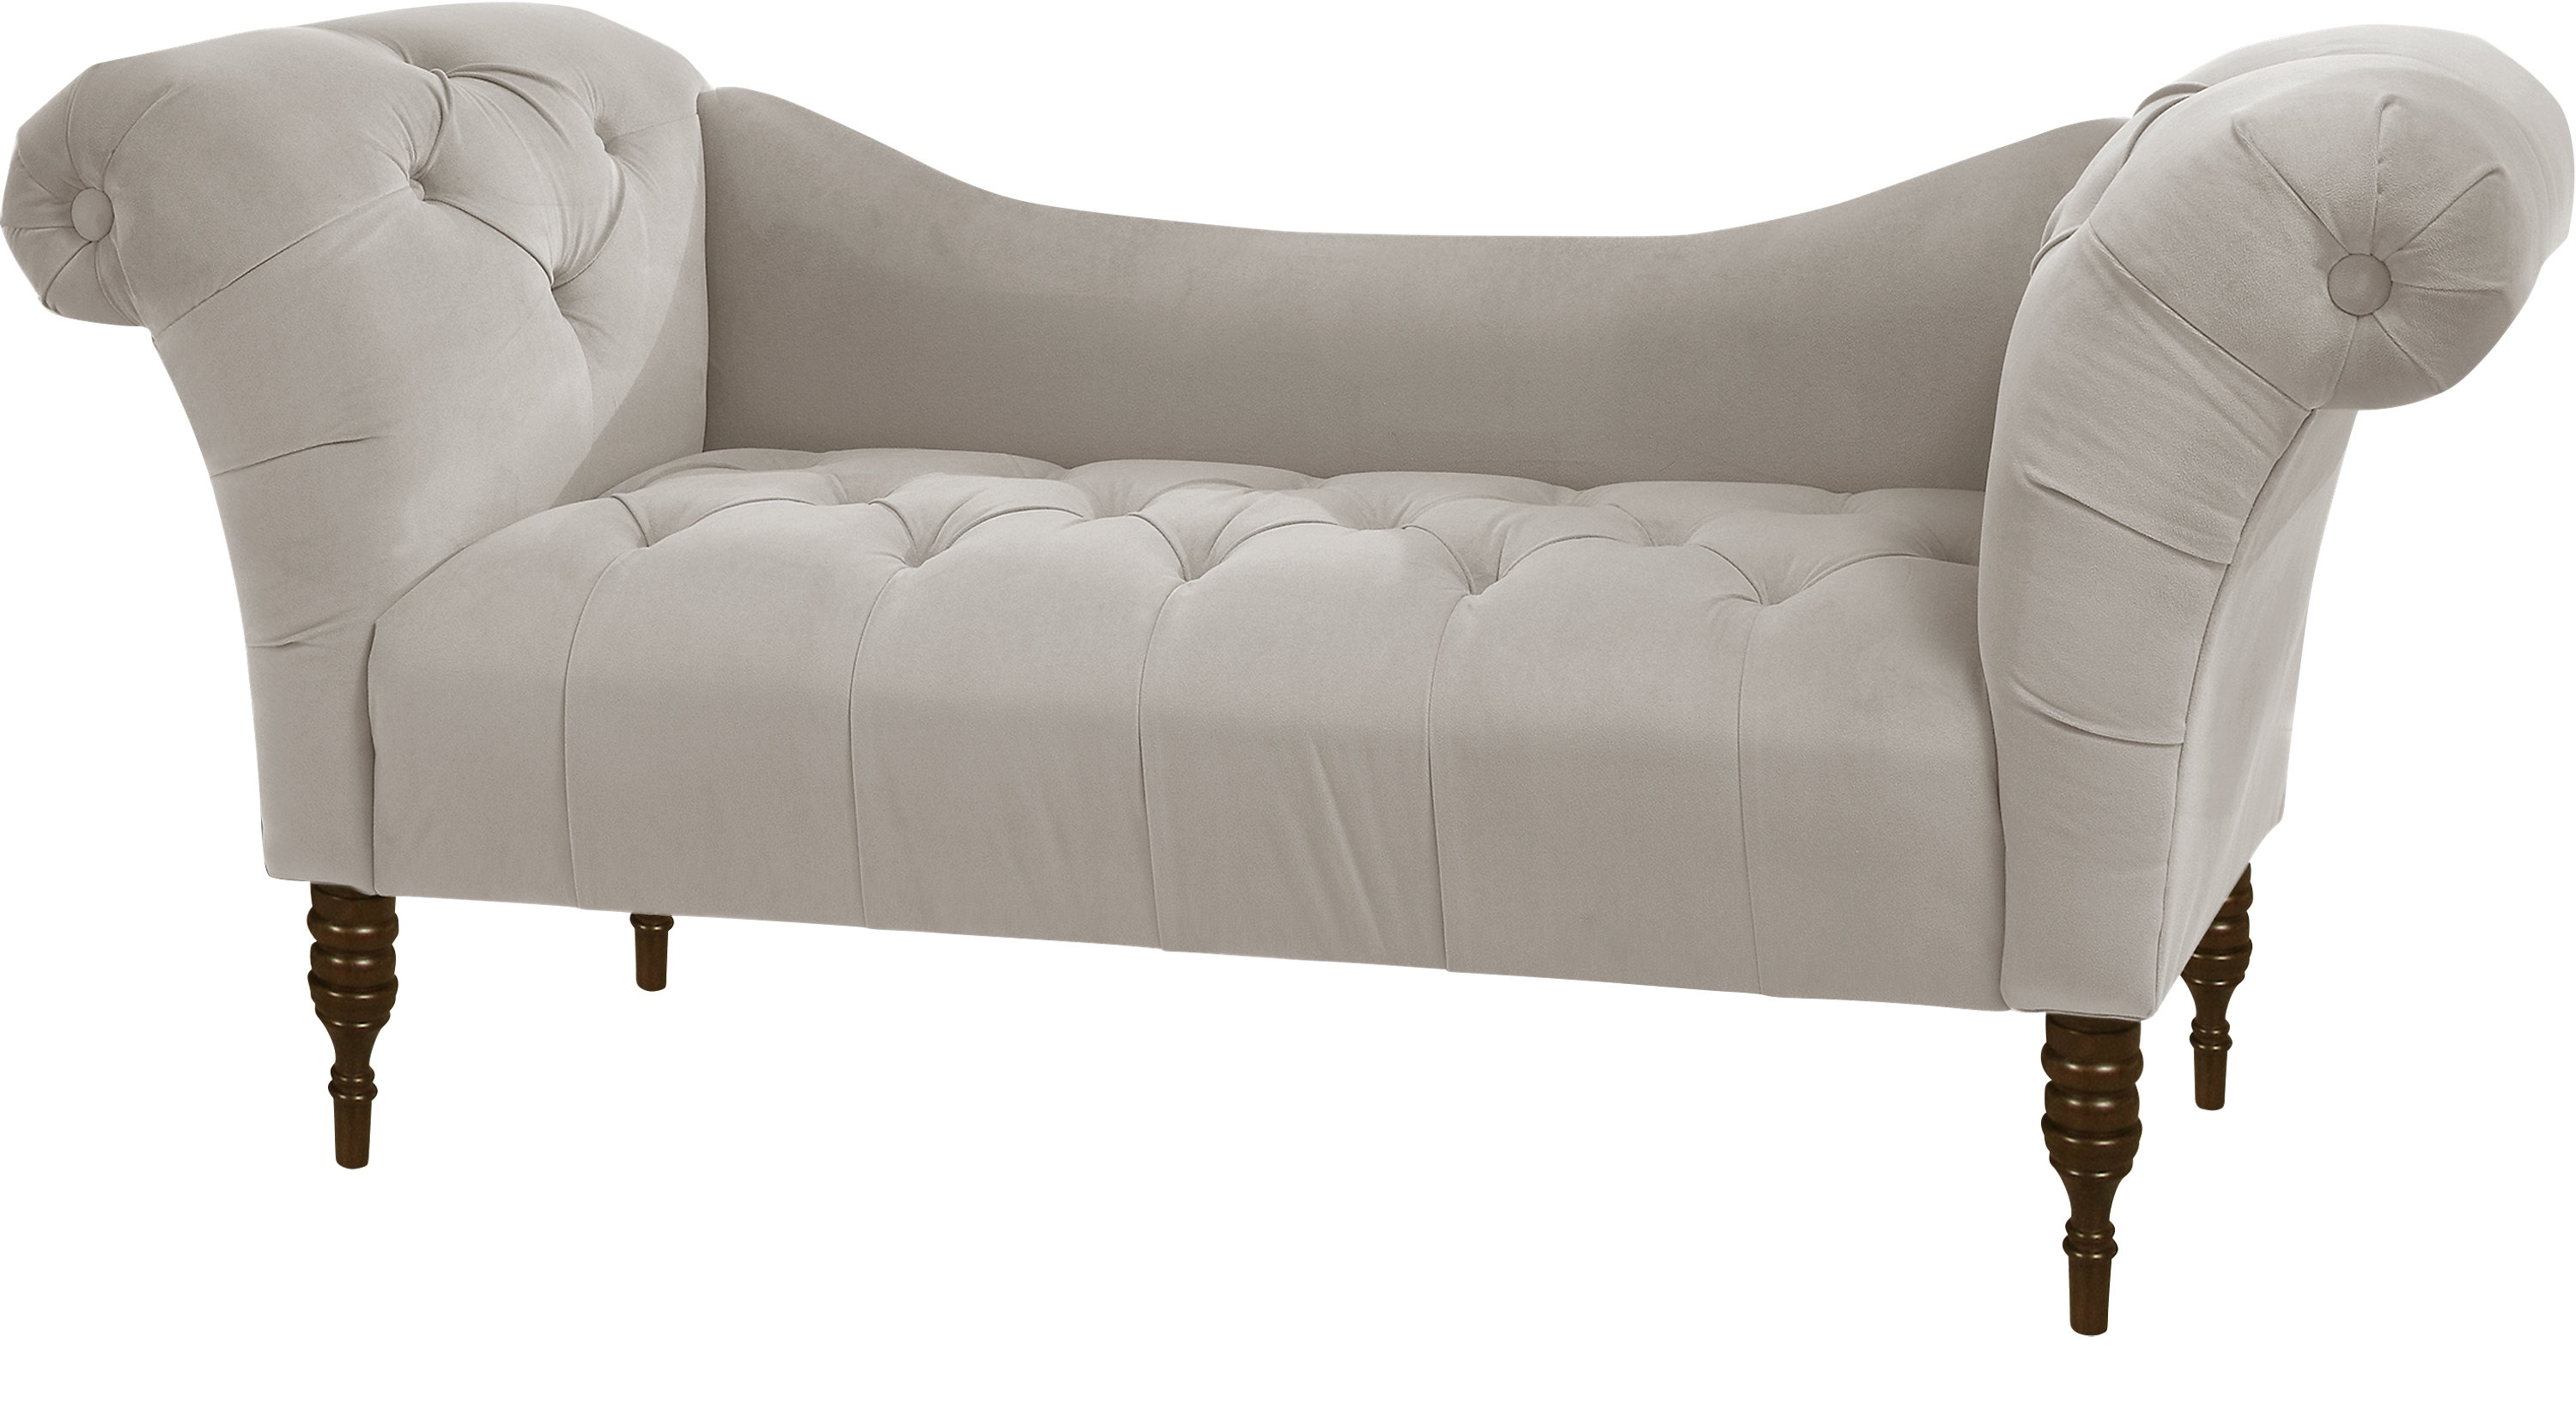 Current Grey Chaises – Grey Chaise Lounge Sofas Within Gray Chaise Lounges (View 8 of 15)